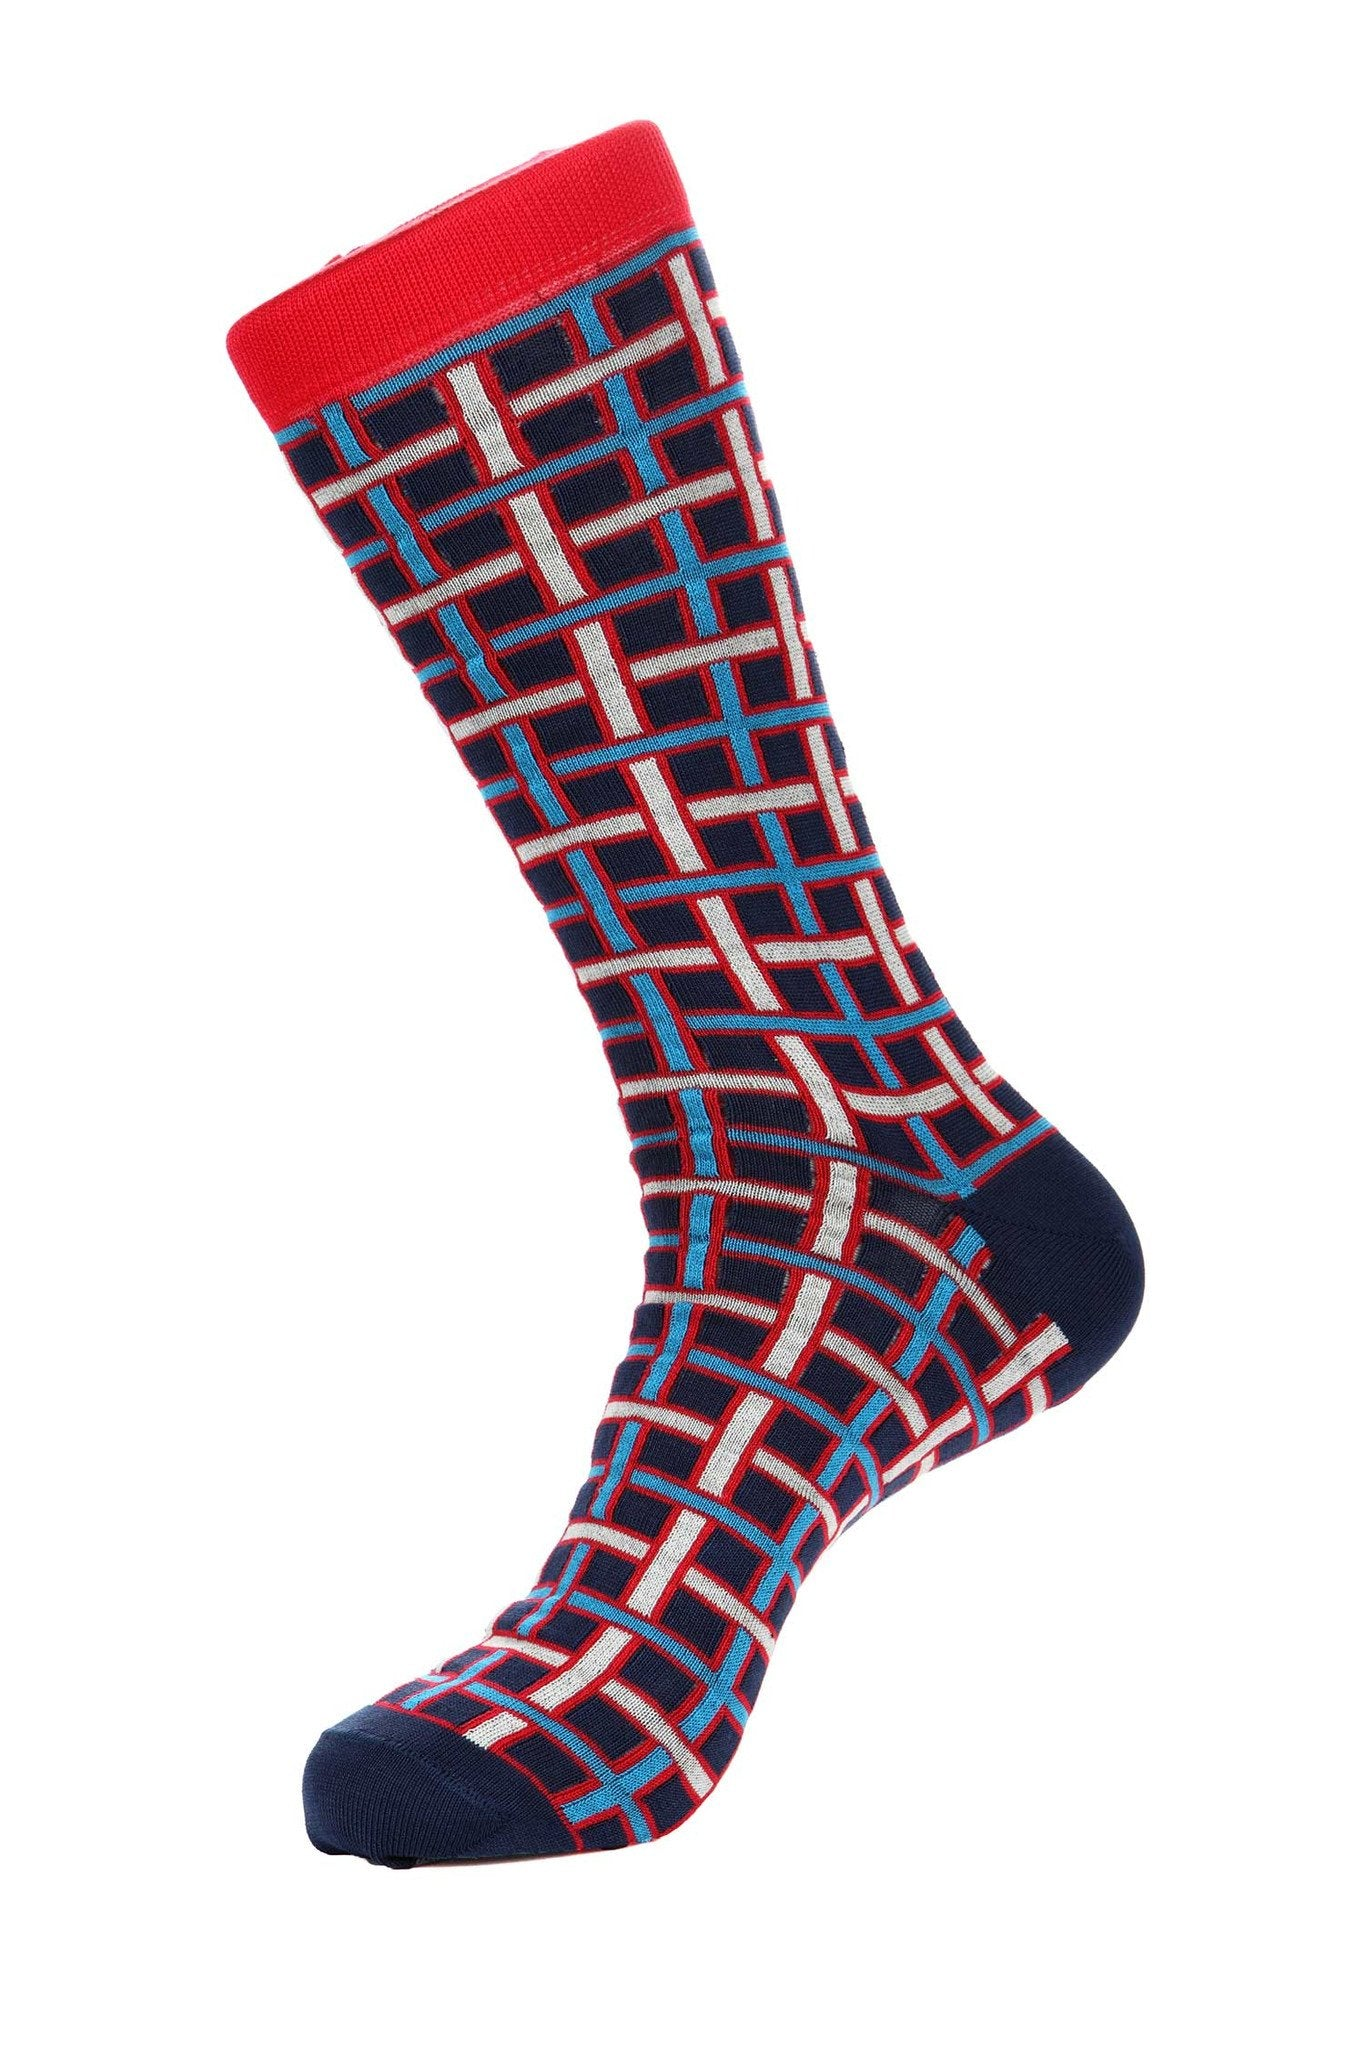 Red White Blue Mercerized Socks for Men JL-11015-1 - Jared Lang